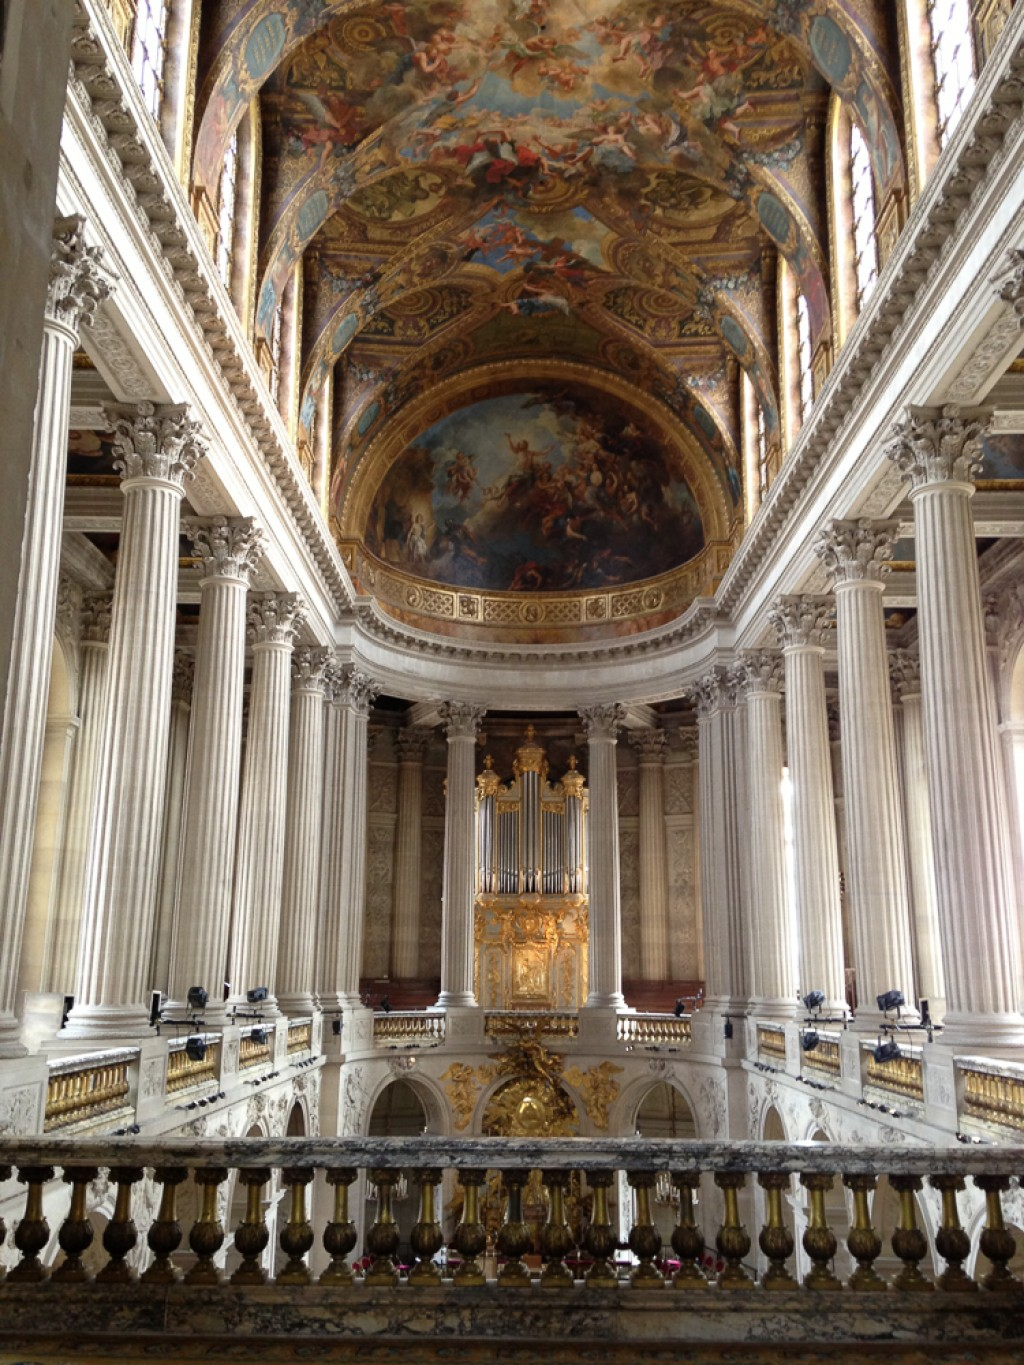 The Versailles Chapel, one of the grandest rooms